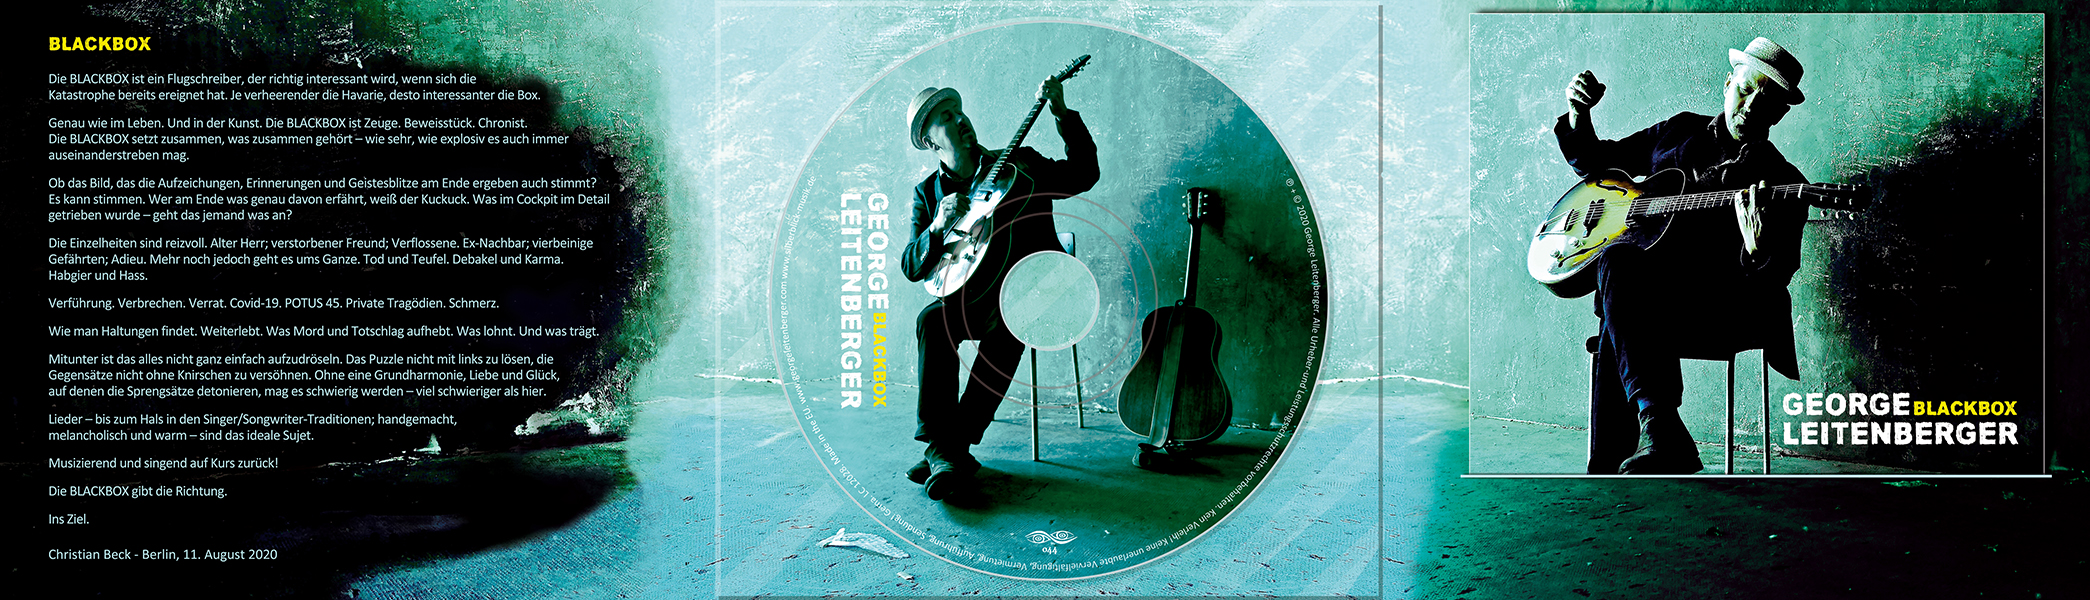 George Leitenberger CD-Cover DigiPack Booklet Christian Bennat Print Layout 2020